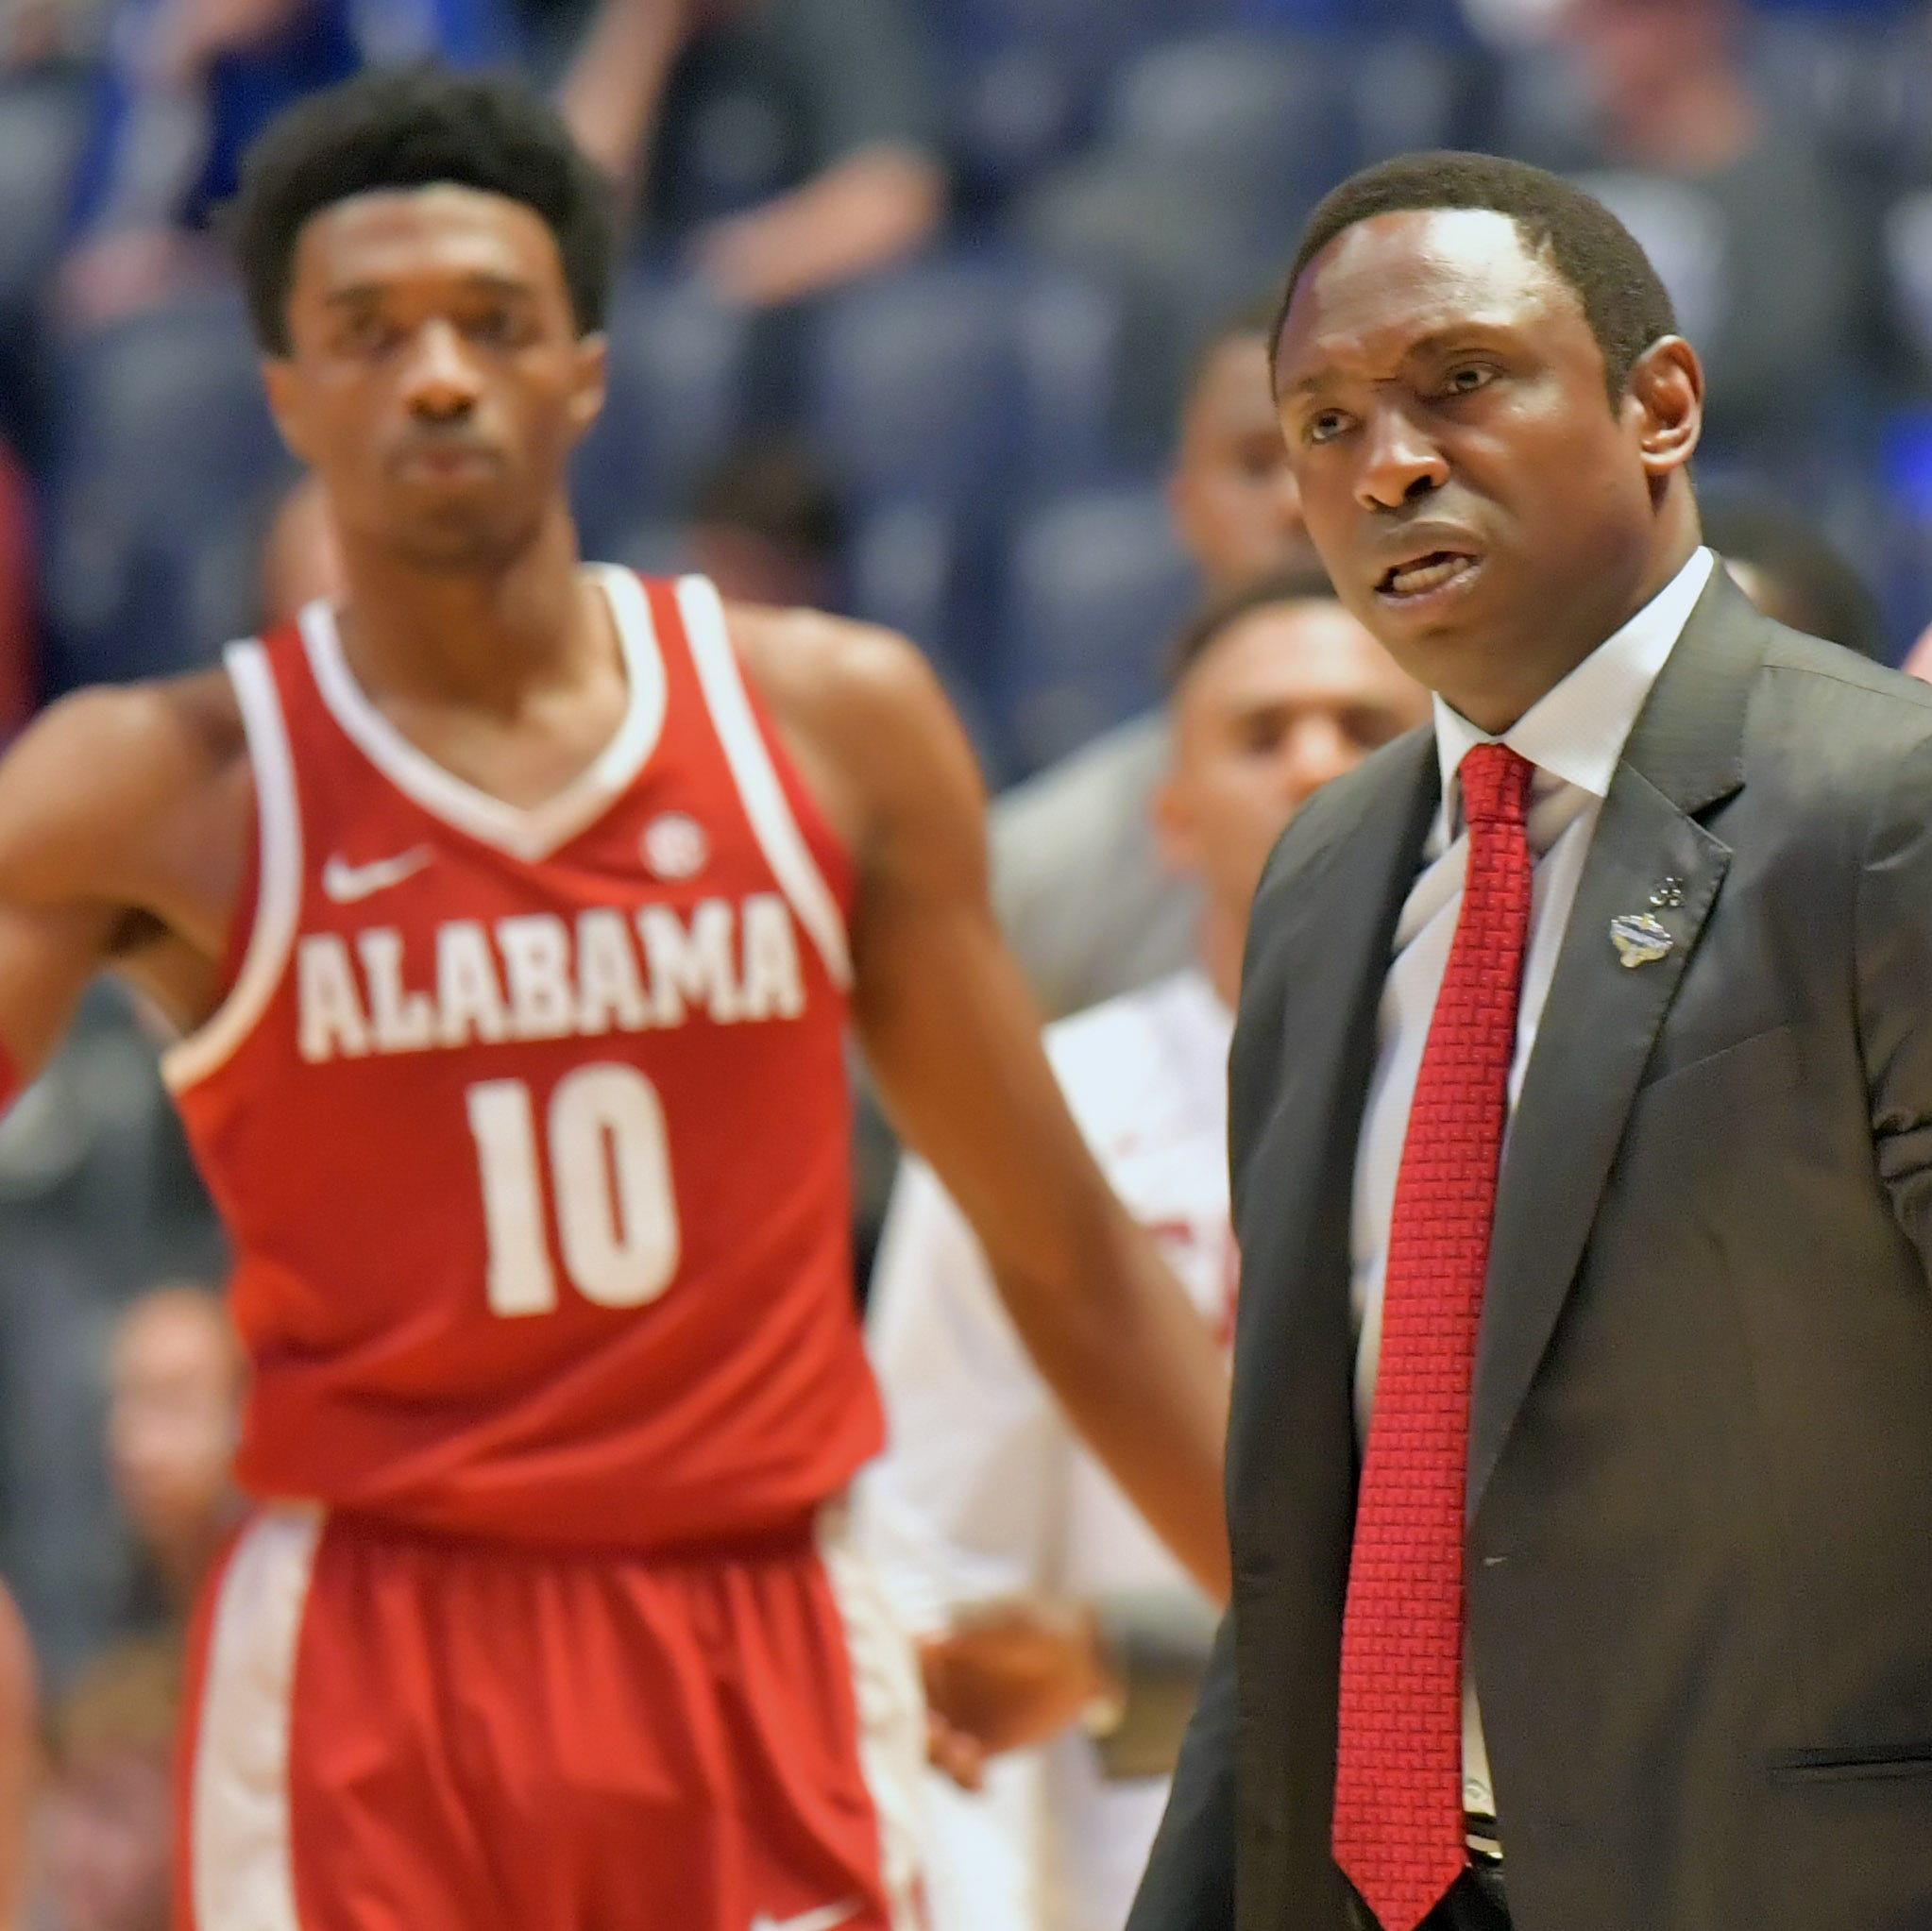 How to watch, stream online Alabama basketball vs. Norfolk State in NIT Tournament 2019